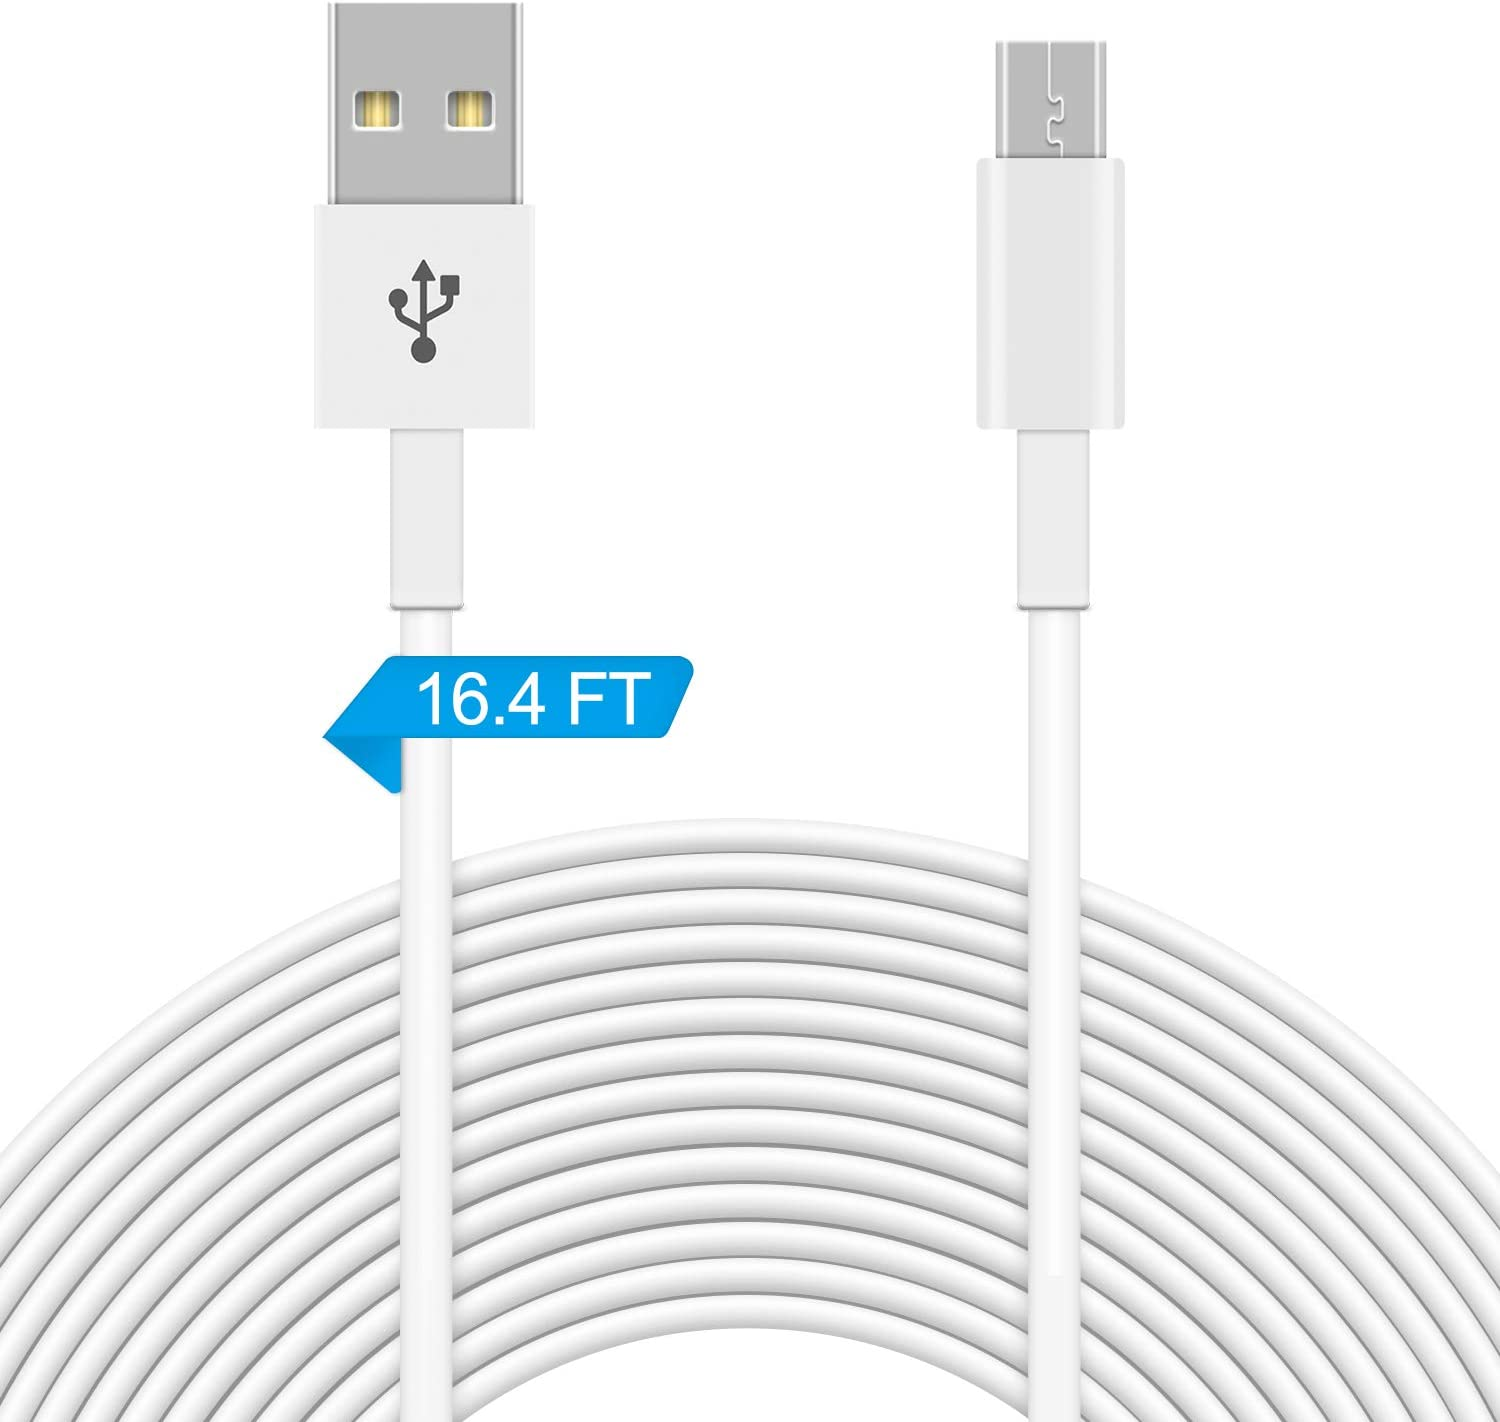 16.4FT Power Extension Cable Compatible with WyzeCam,WyzeCam Pan,Yi Camera,NestCam Indoor,Netvue,KasaCam Indoor,Furbo Dog,Zmodo Wireless Cam,Drop cam,USB to Micro USB Charging Cord for Security Cam